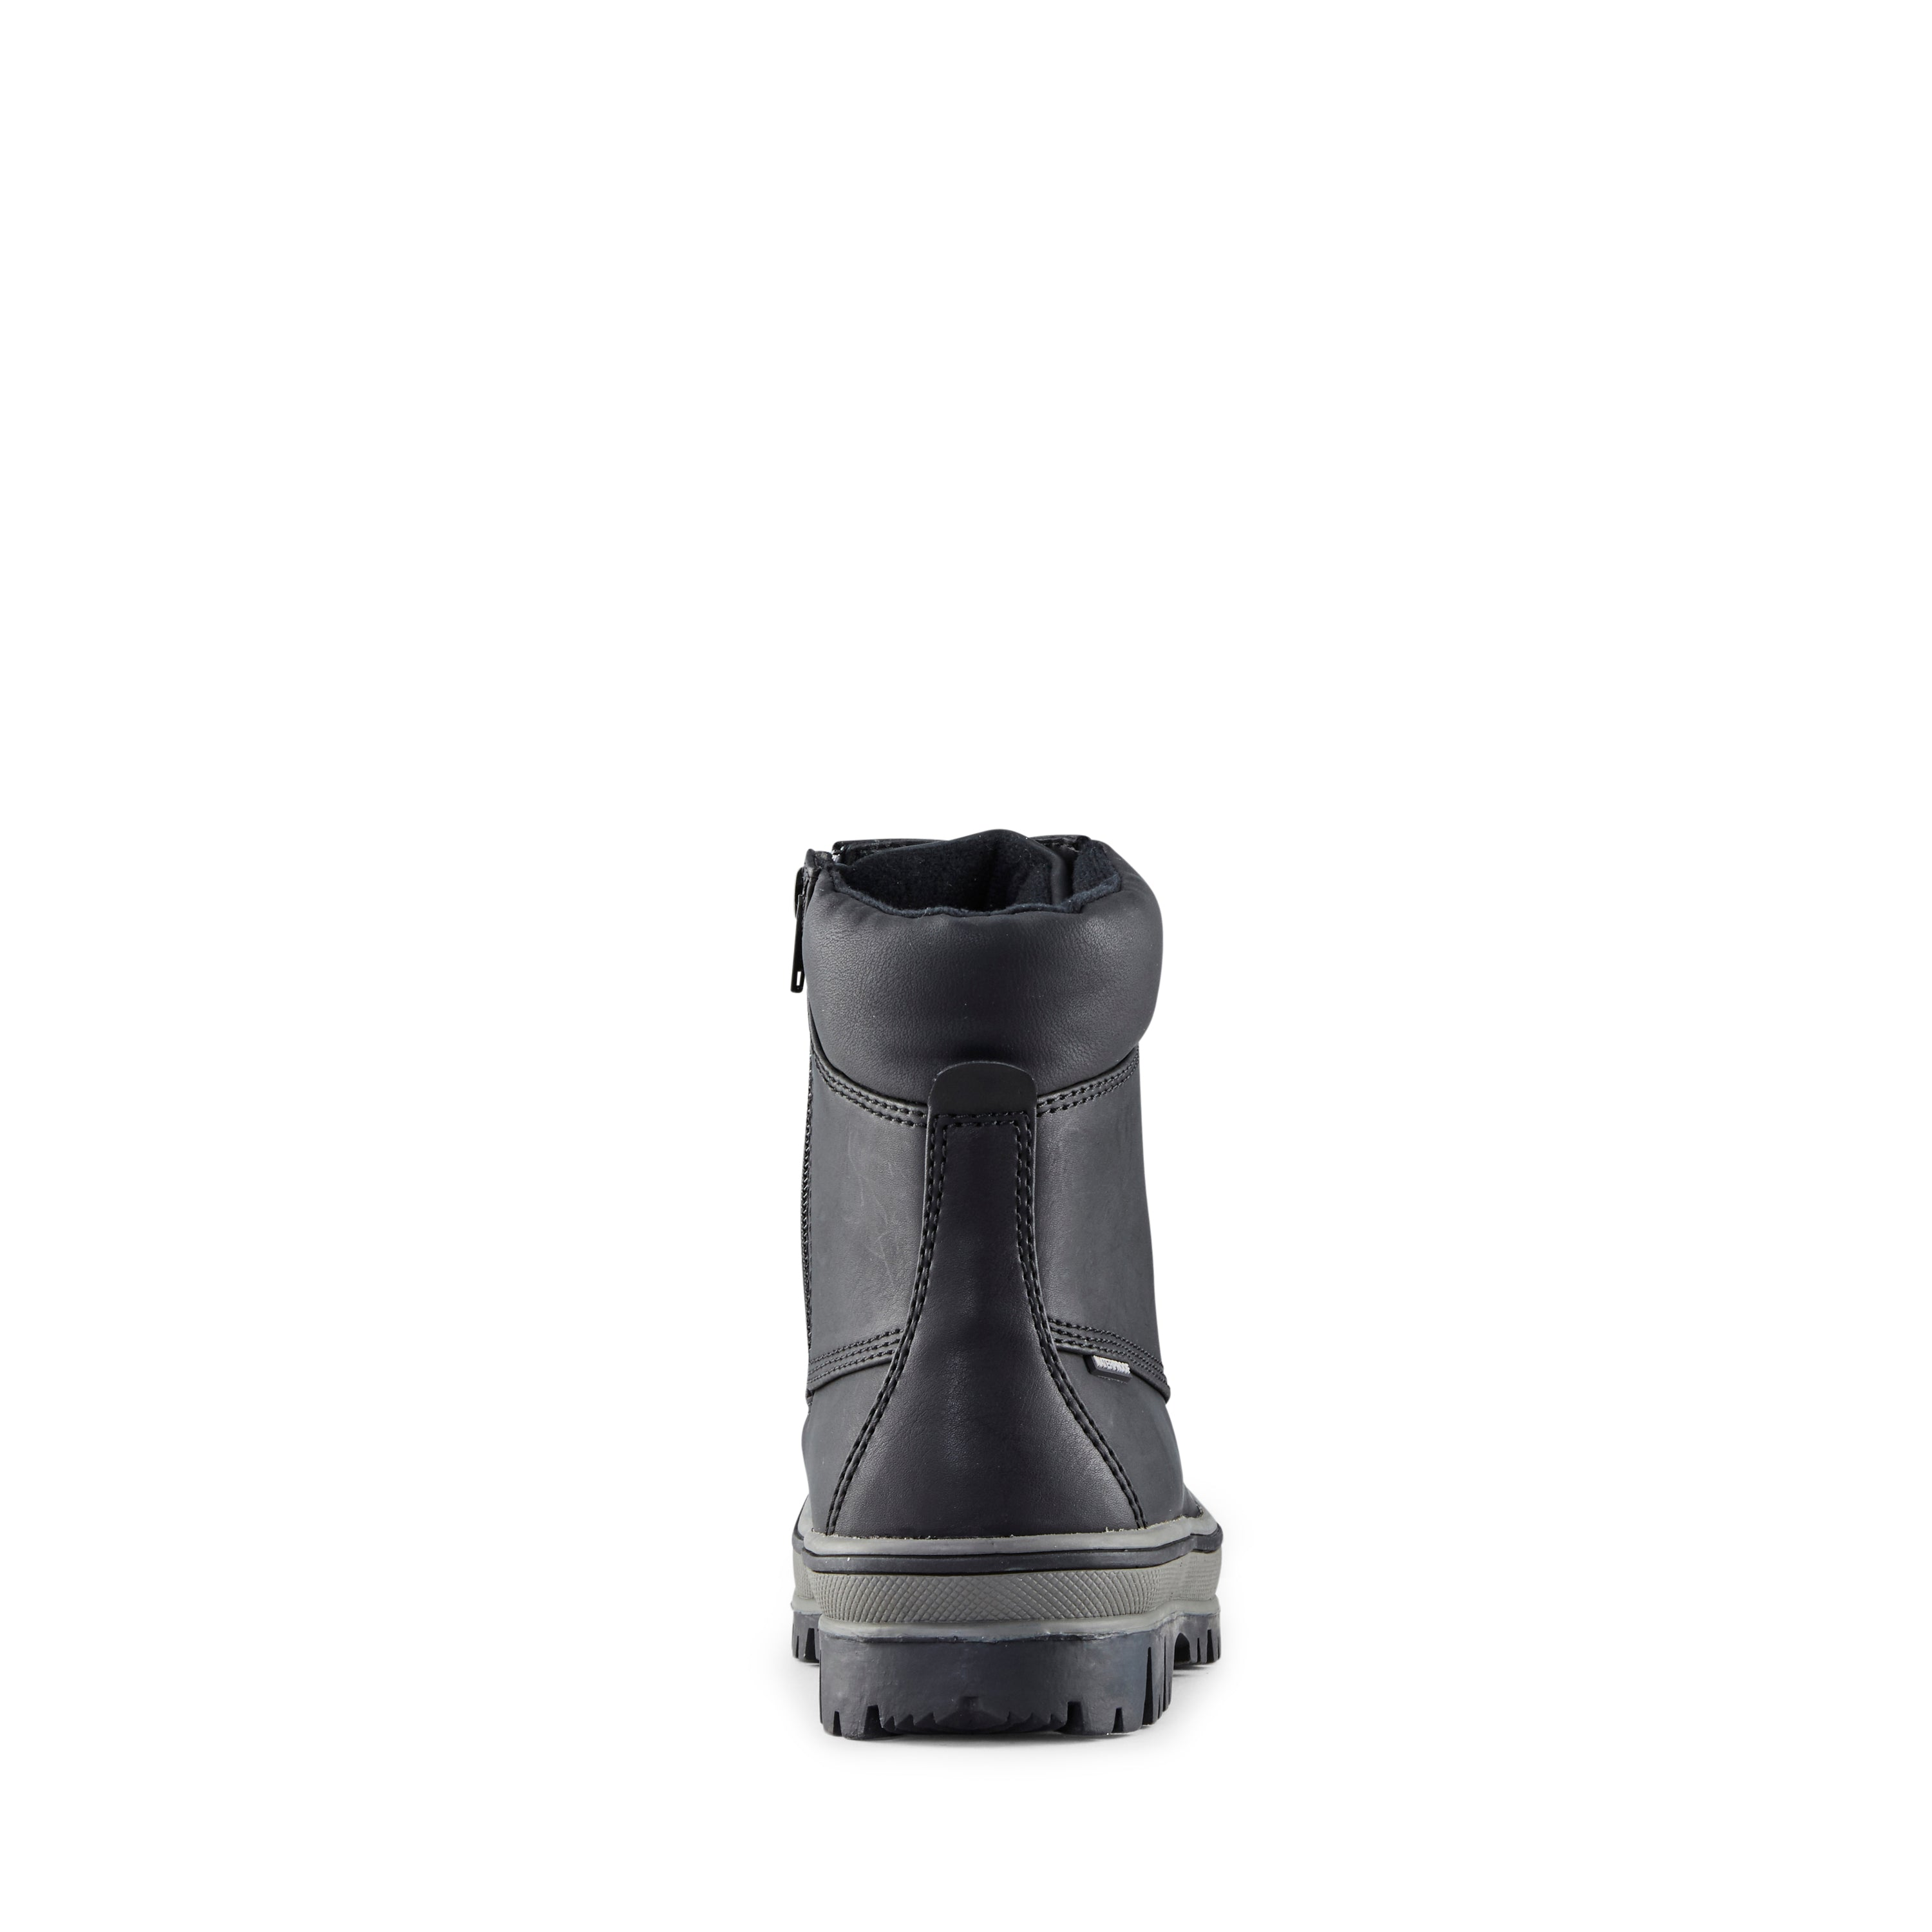 Cougar kid's boot black inspired style with snow boot function (back). Thermolite insulation for added warmth.